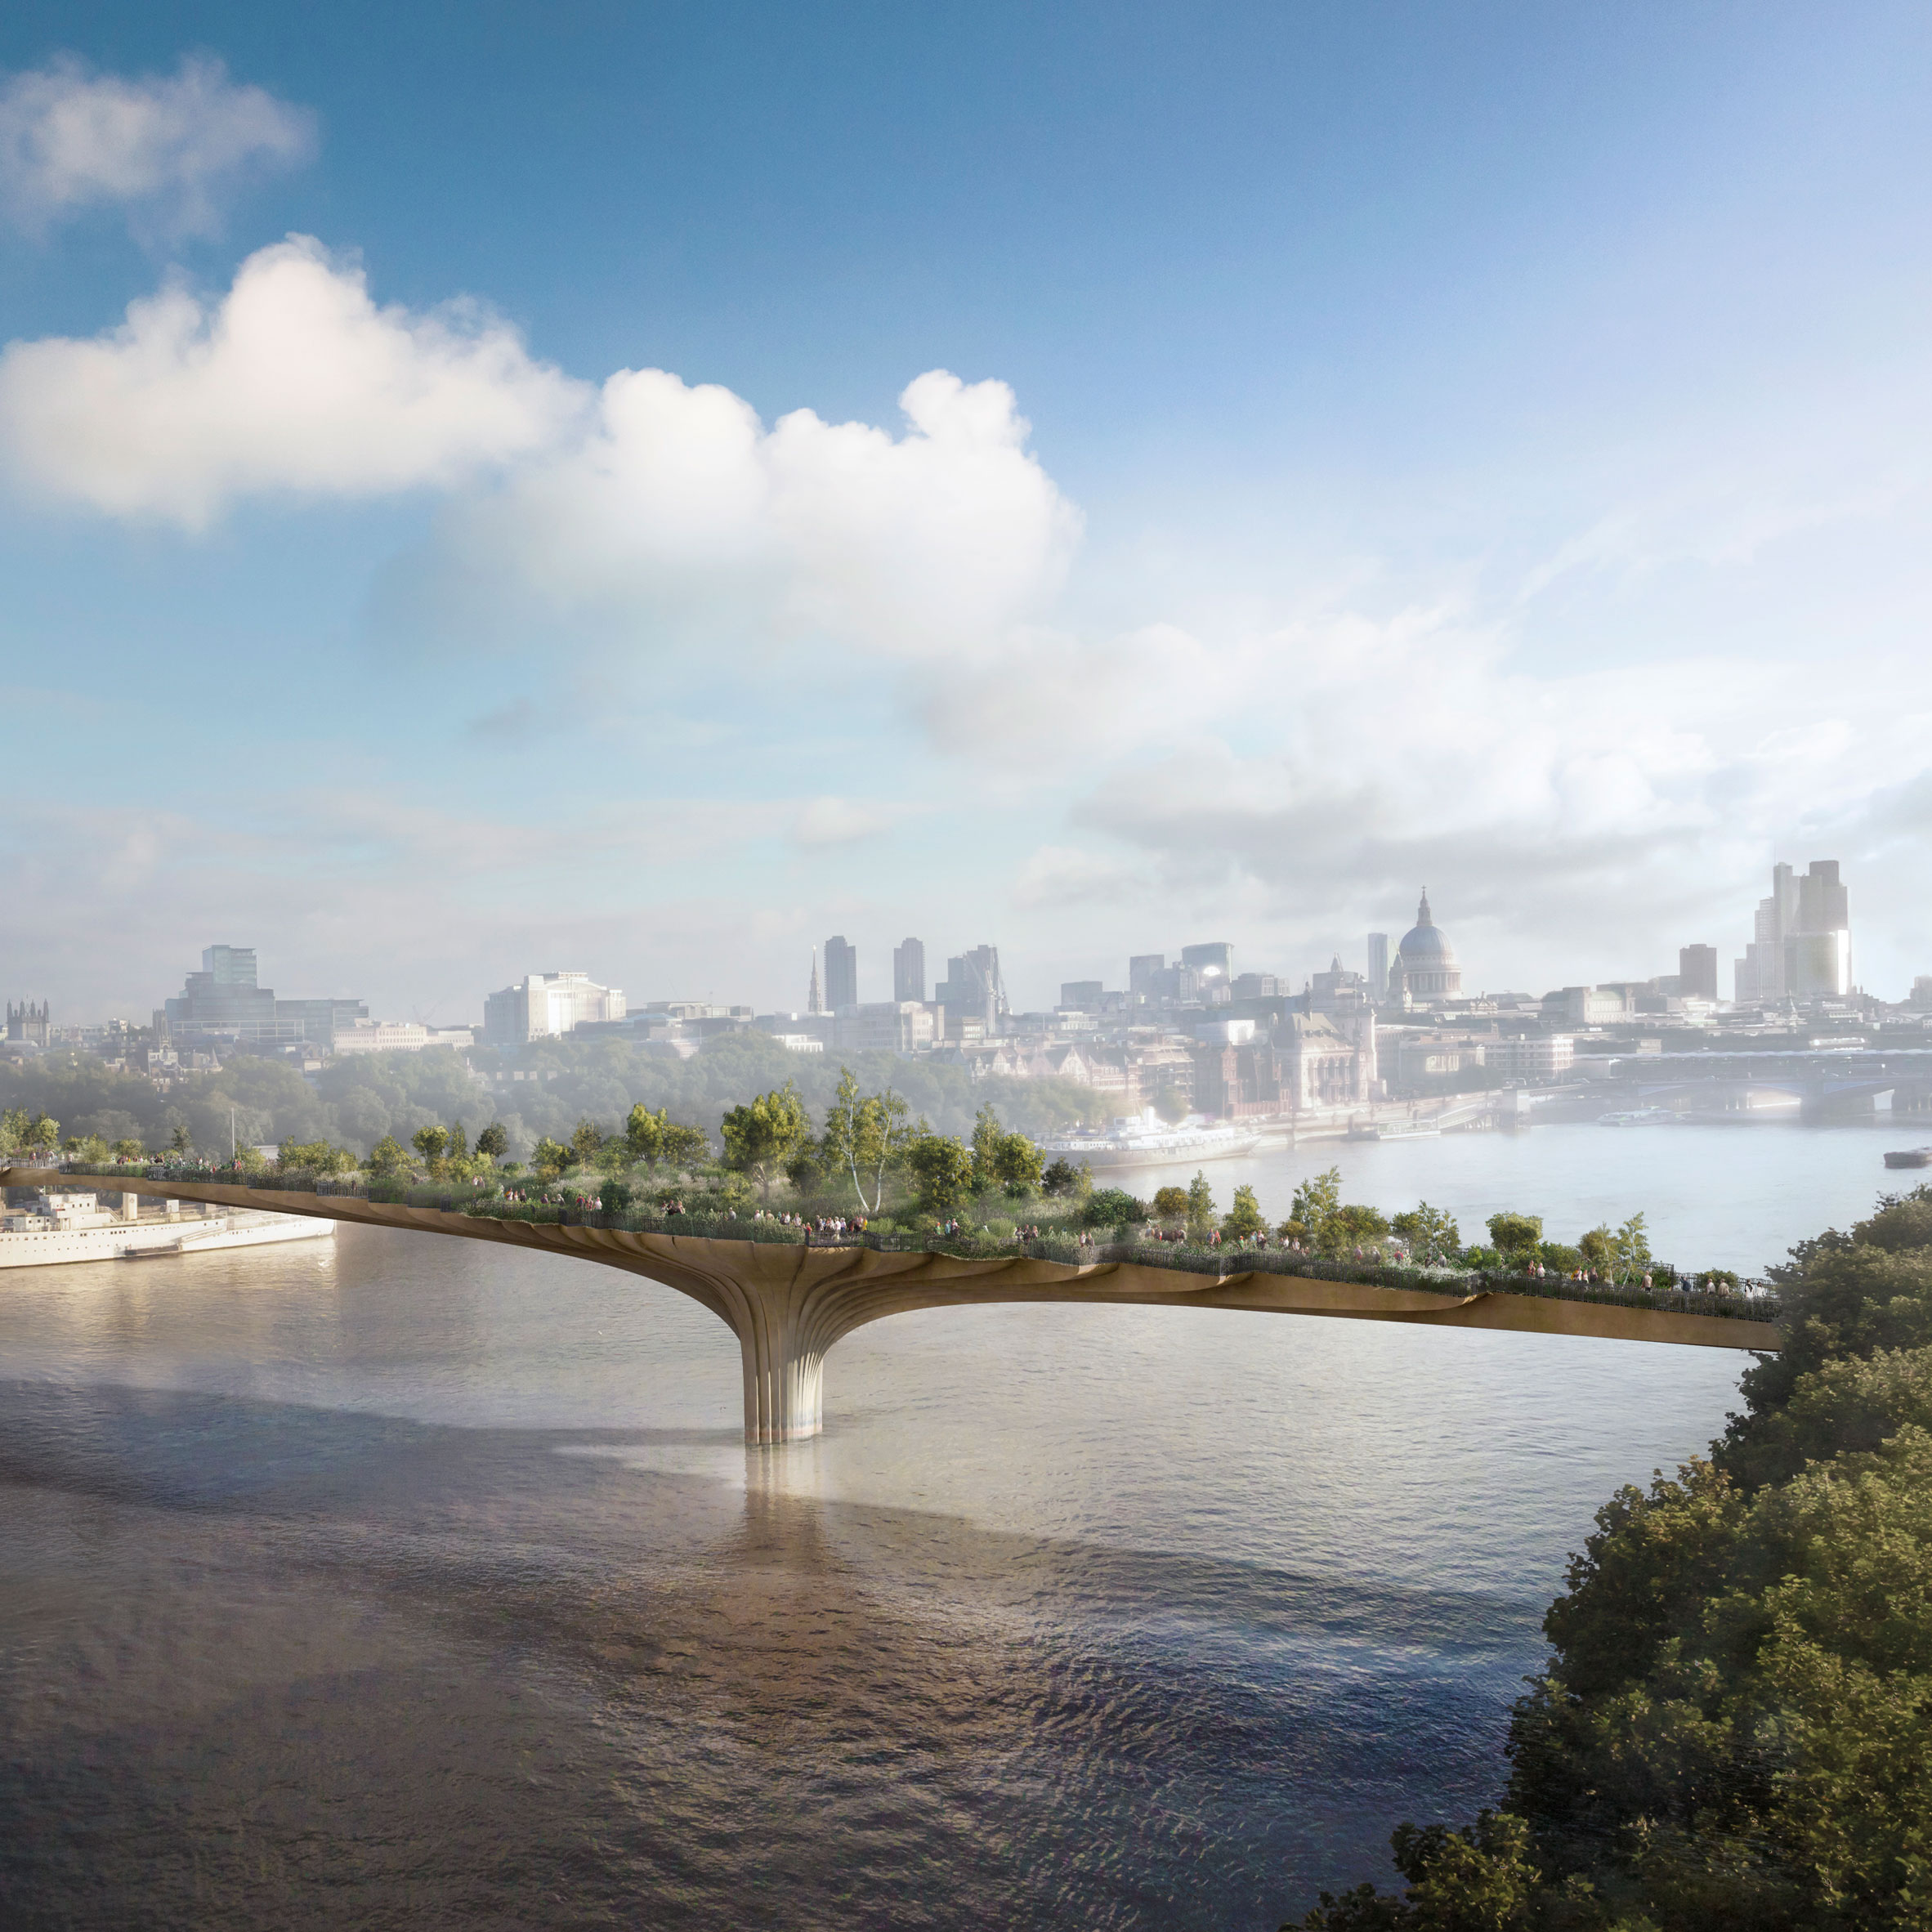 London mayor launches inquiry into finances of contentious Garden Bridge